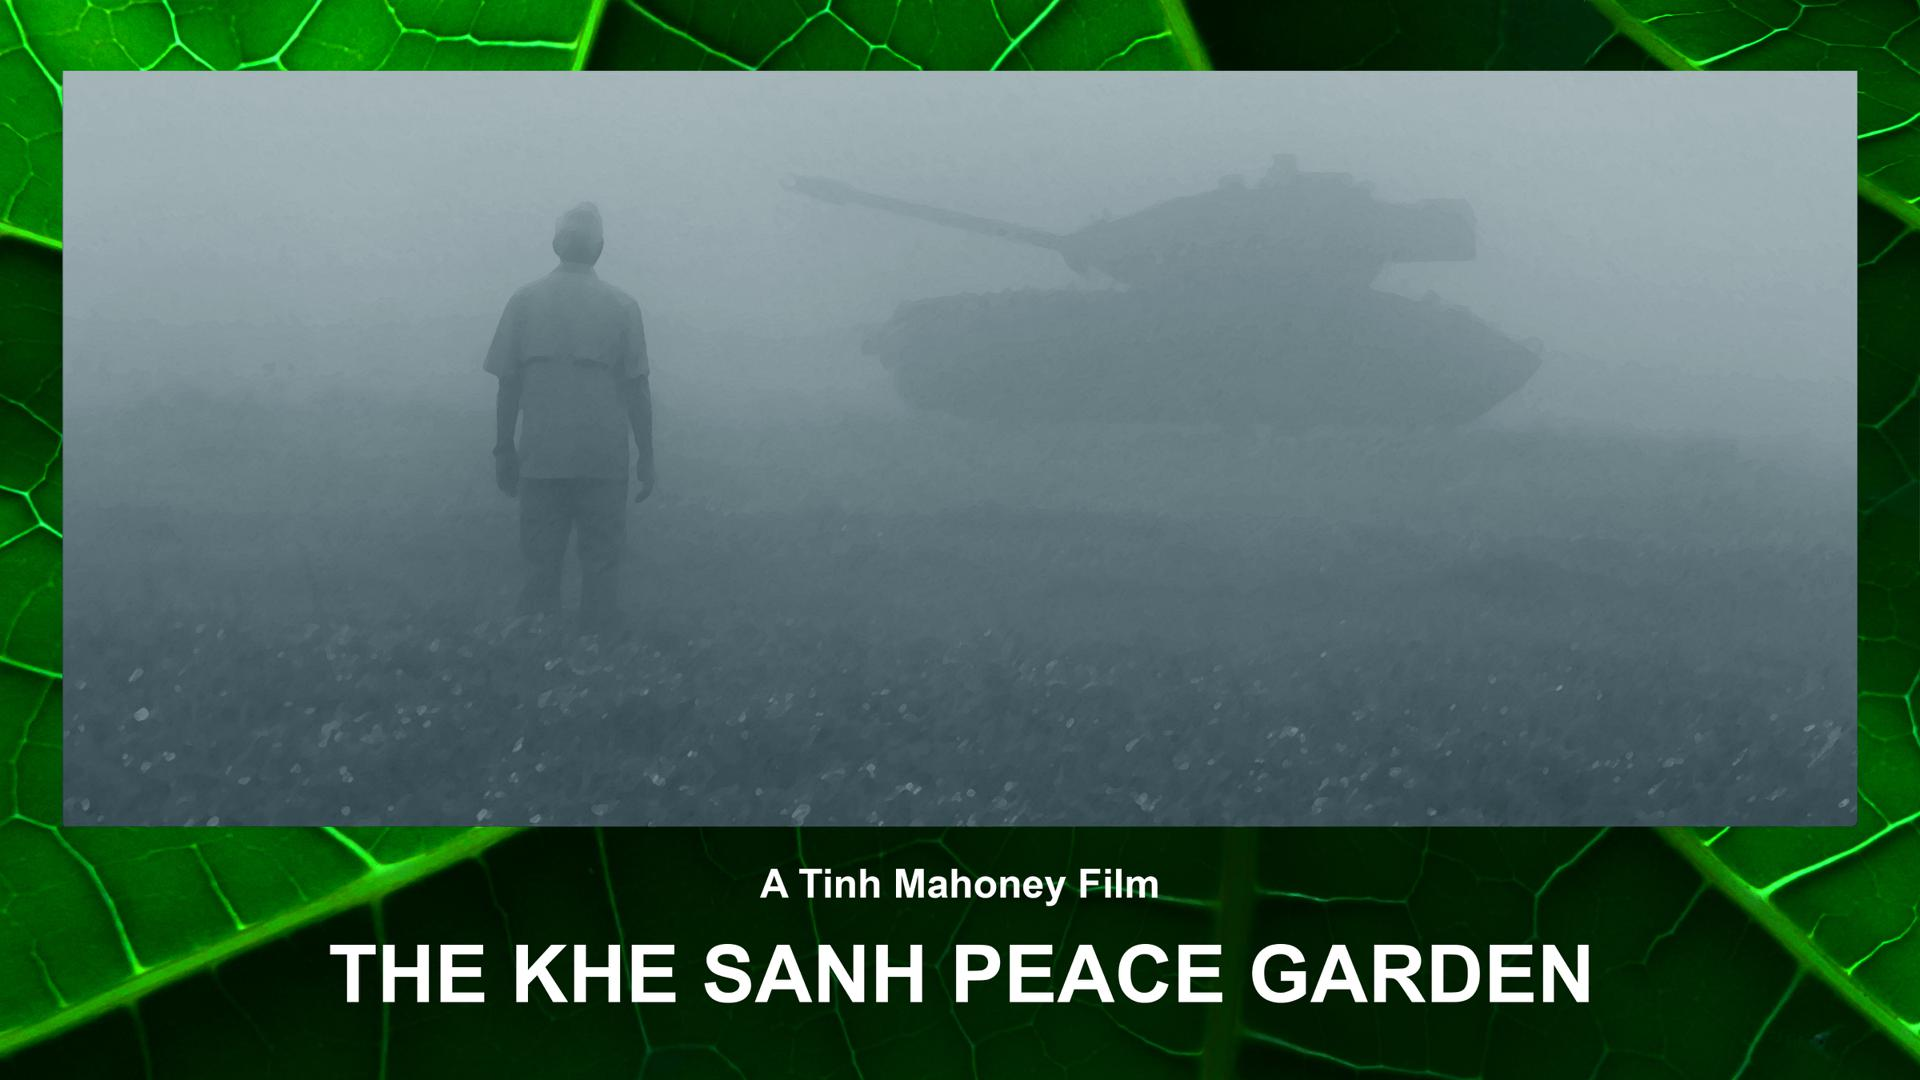 The Khe Sanh Peace Garden